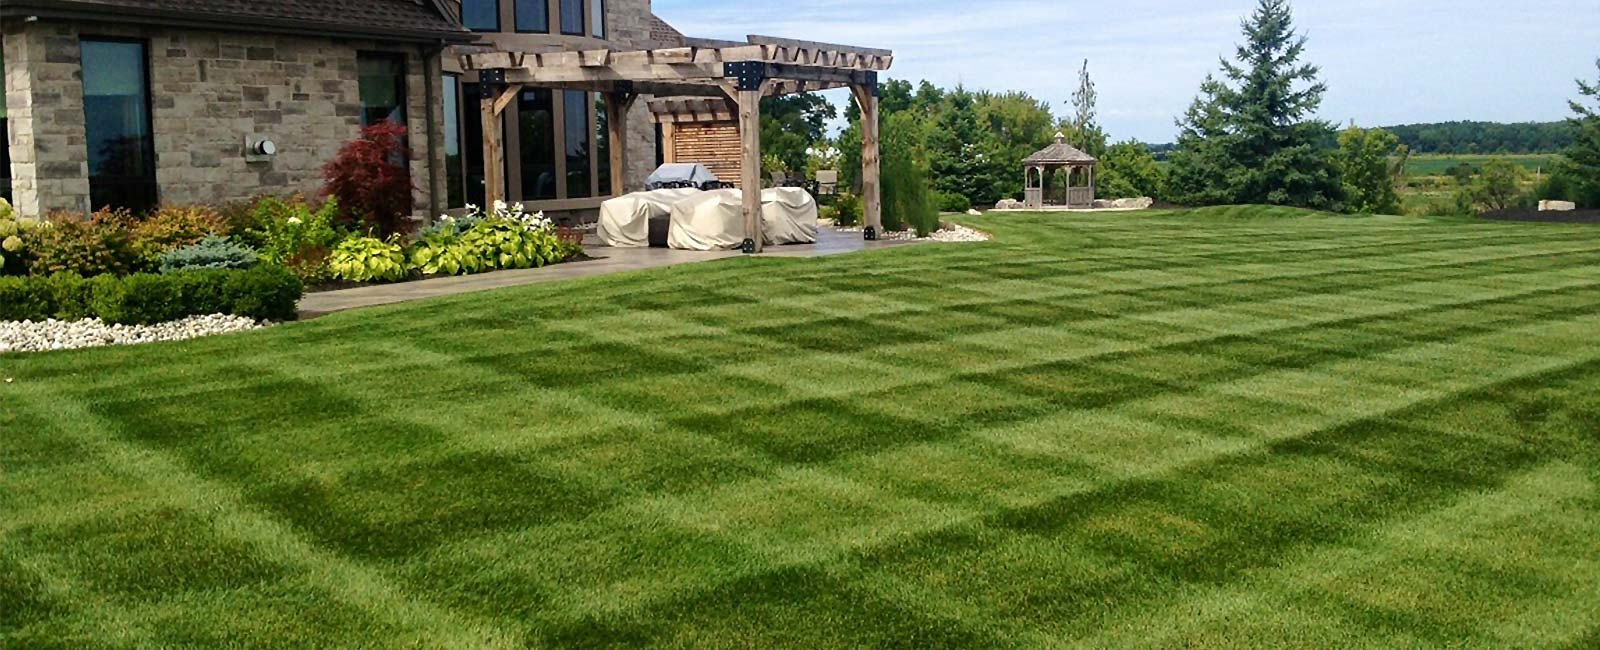 Niagara Outdoor Landscape Design, Construction & Maintenance, Ontario